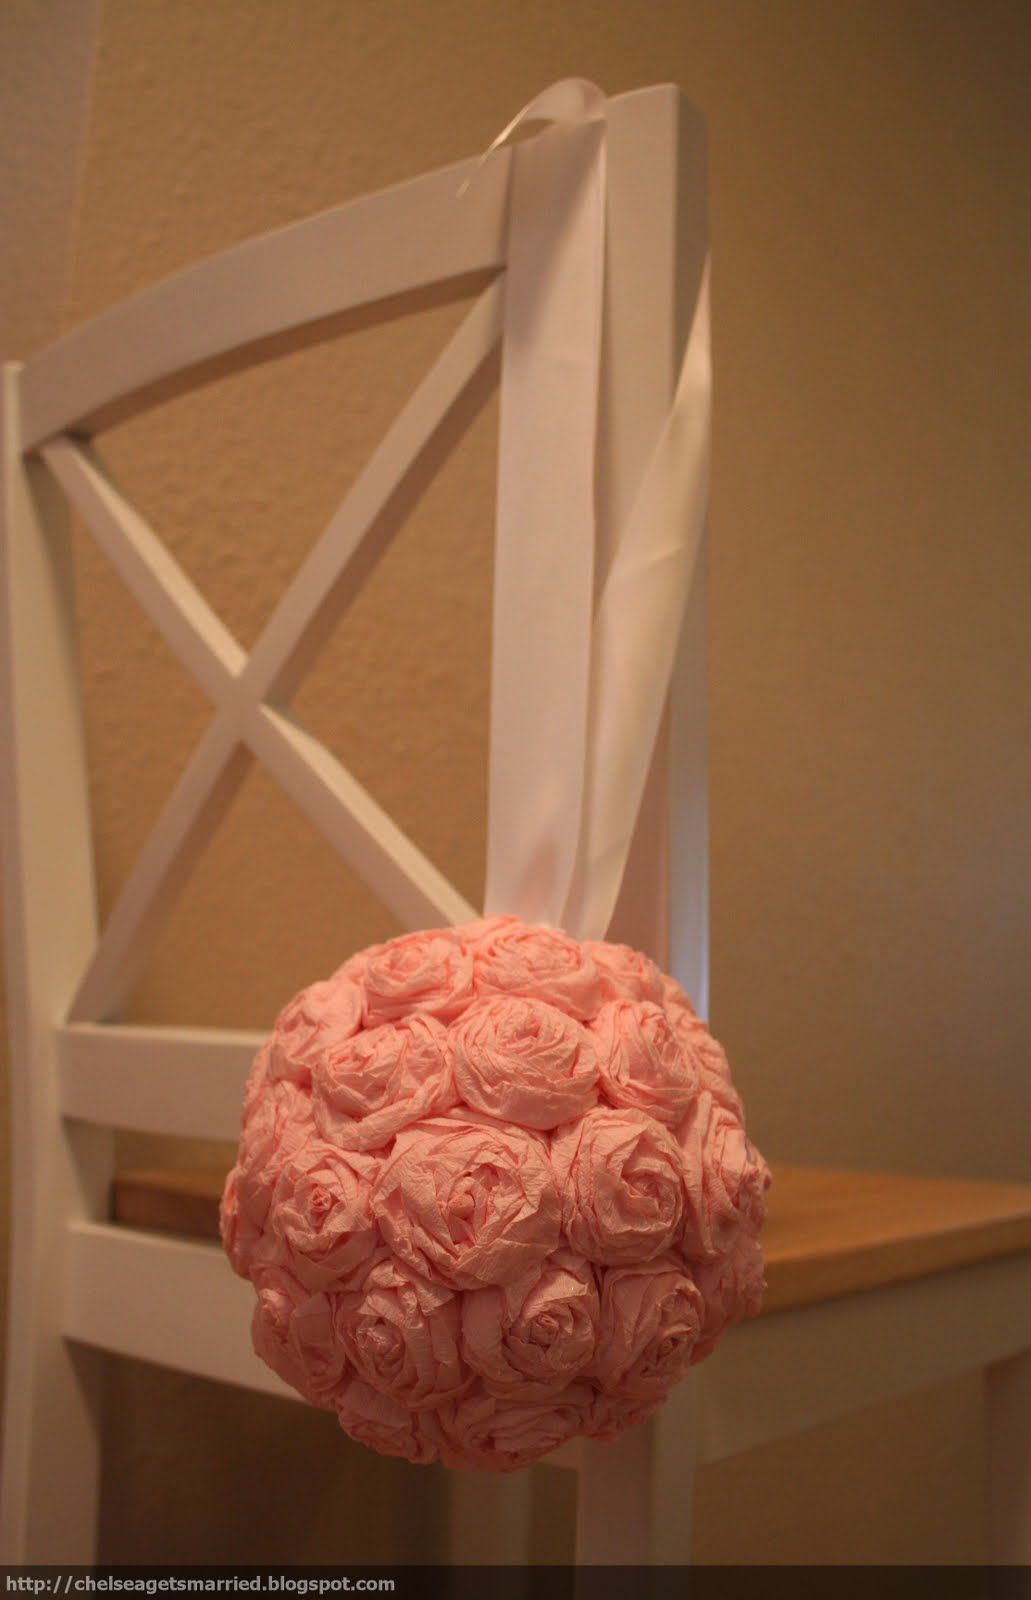 Wedding aisle decor ideas diy  Cool idea for aisle decorations Not sure if Iud have the patience